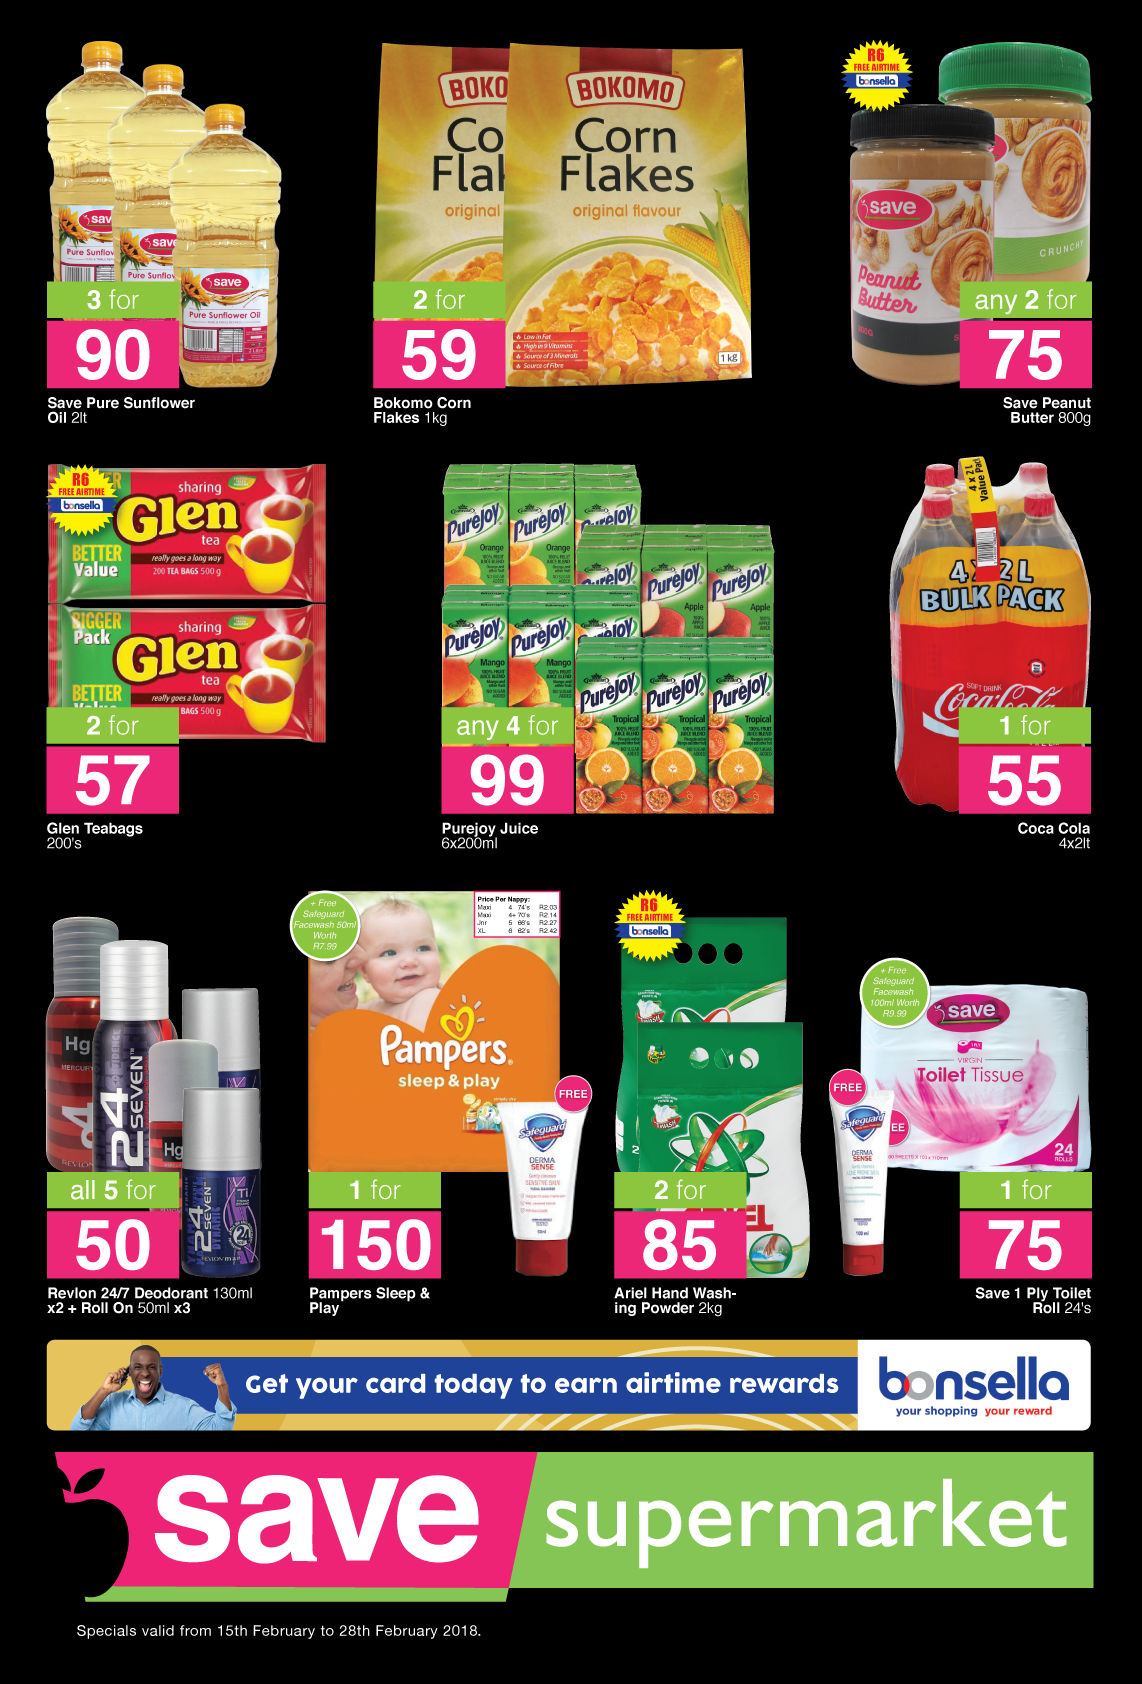 Save Supermarket West Street Specials - until 28th February 2018